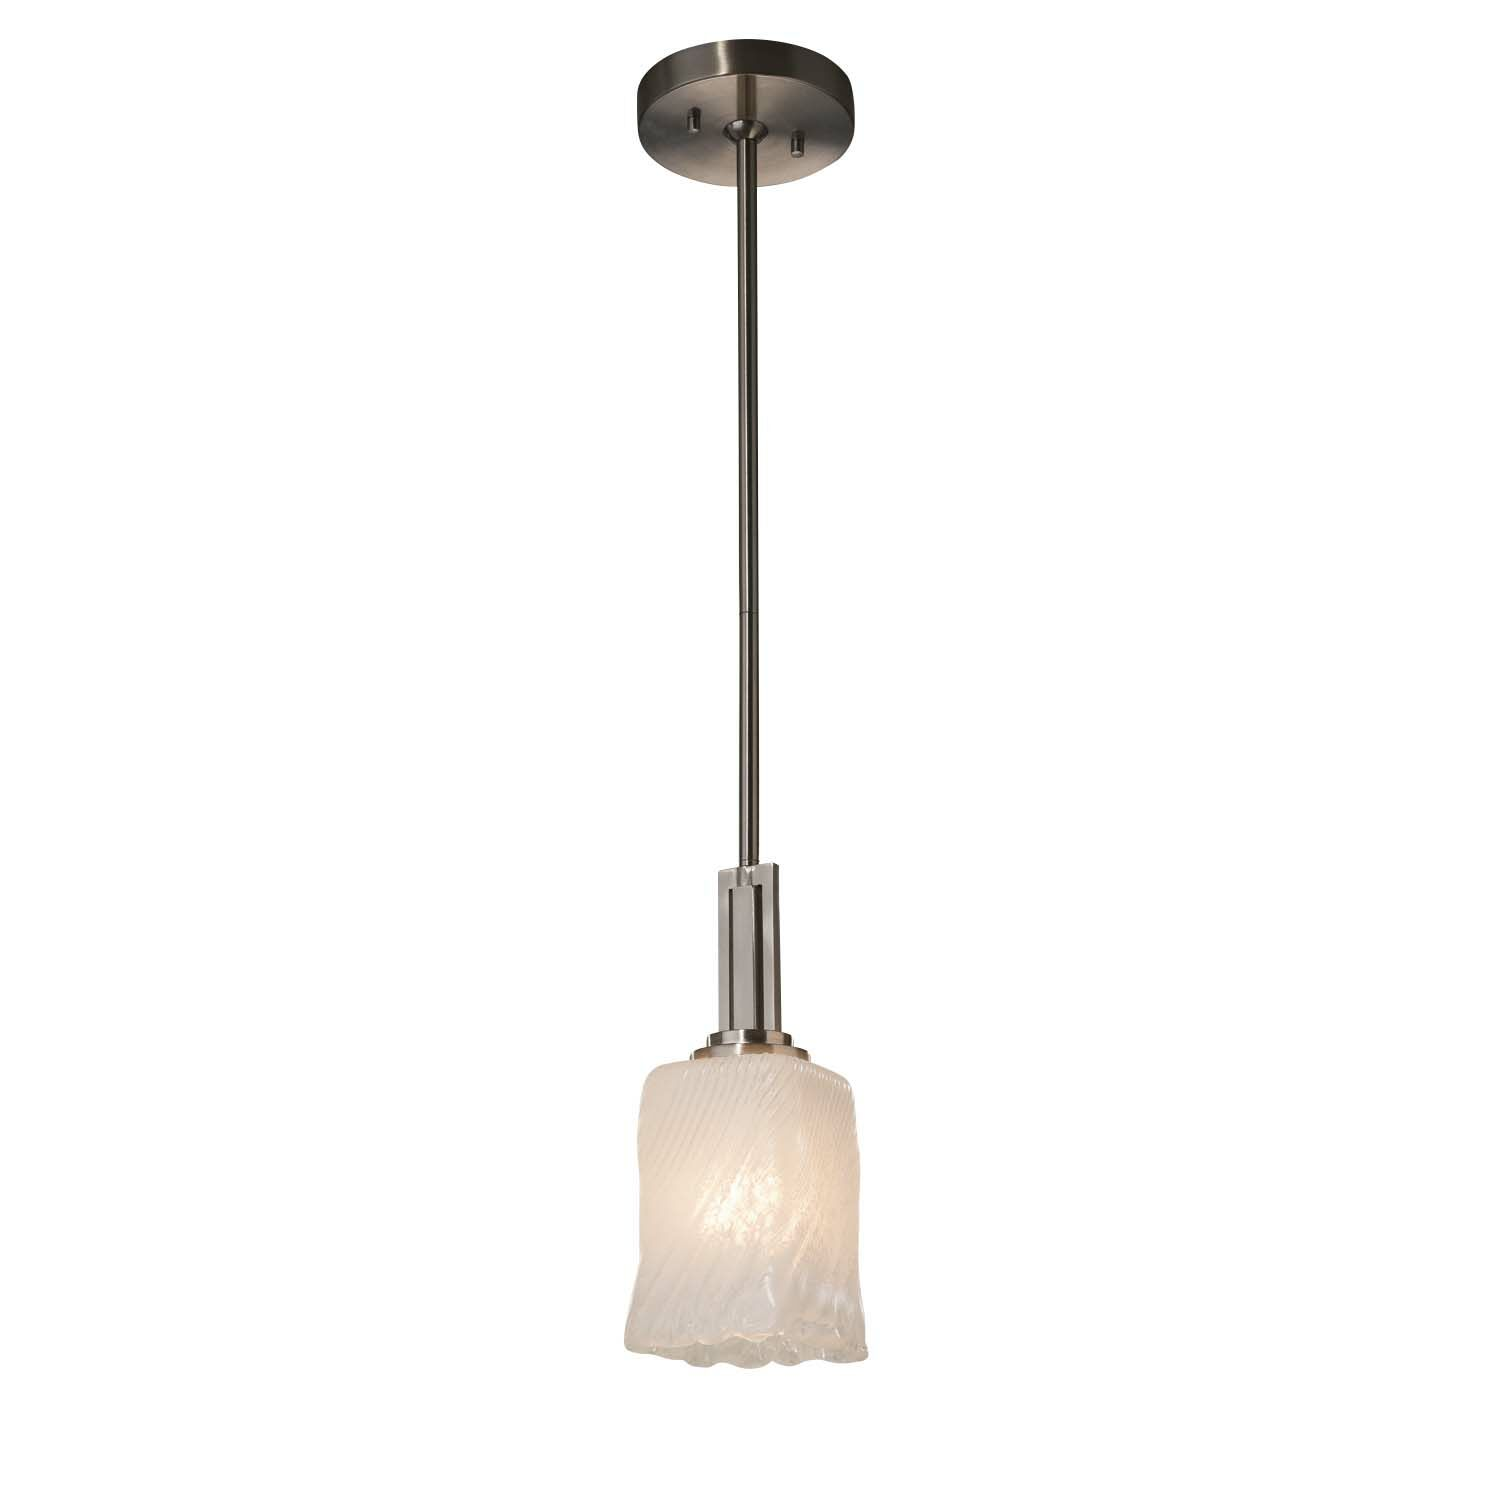 Kelli 1-Light Bell Pendant Finish: Matte Black, Shade Color: White Frosted, Bulb Type: Incandescent